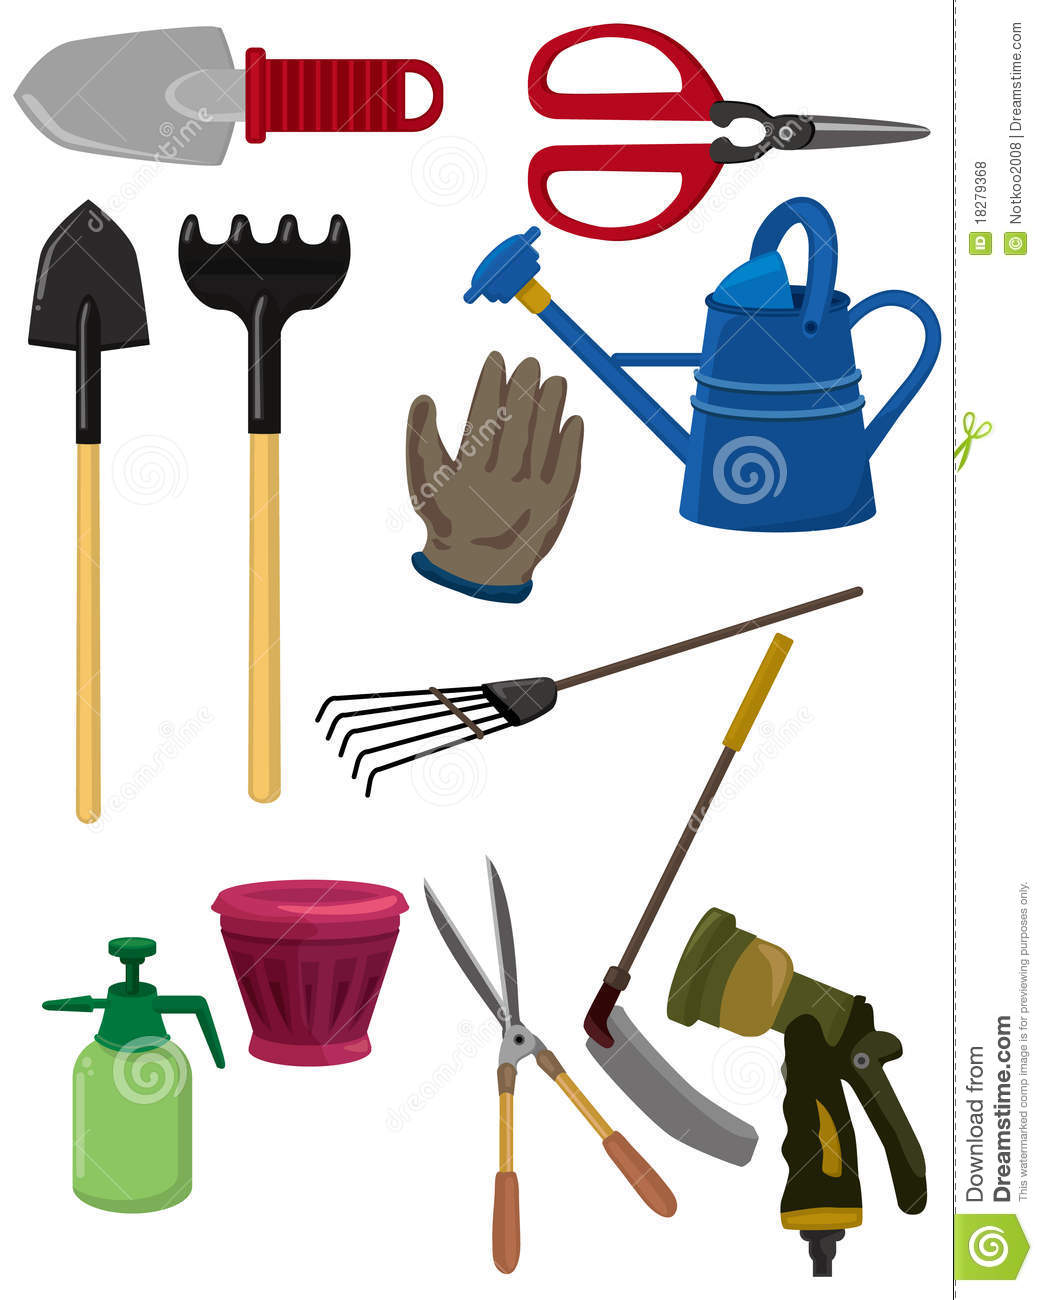 Cartoon gardening icon royalty free stock photos image for Gardening tools cartoon